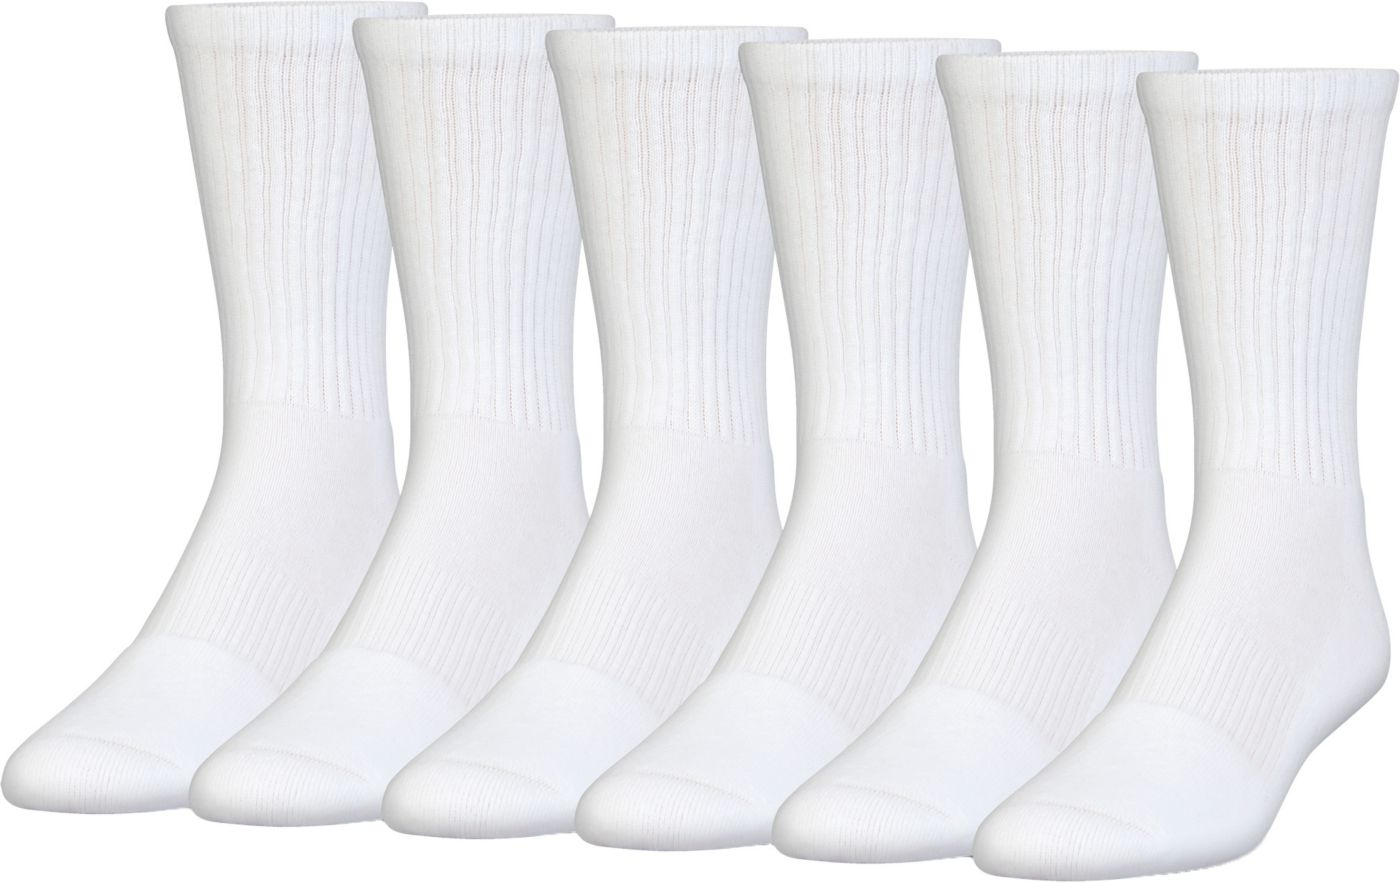 Under Armour Kid's Charged Cotton 2.0 Crew Socks - 6 Pack